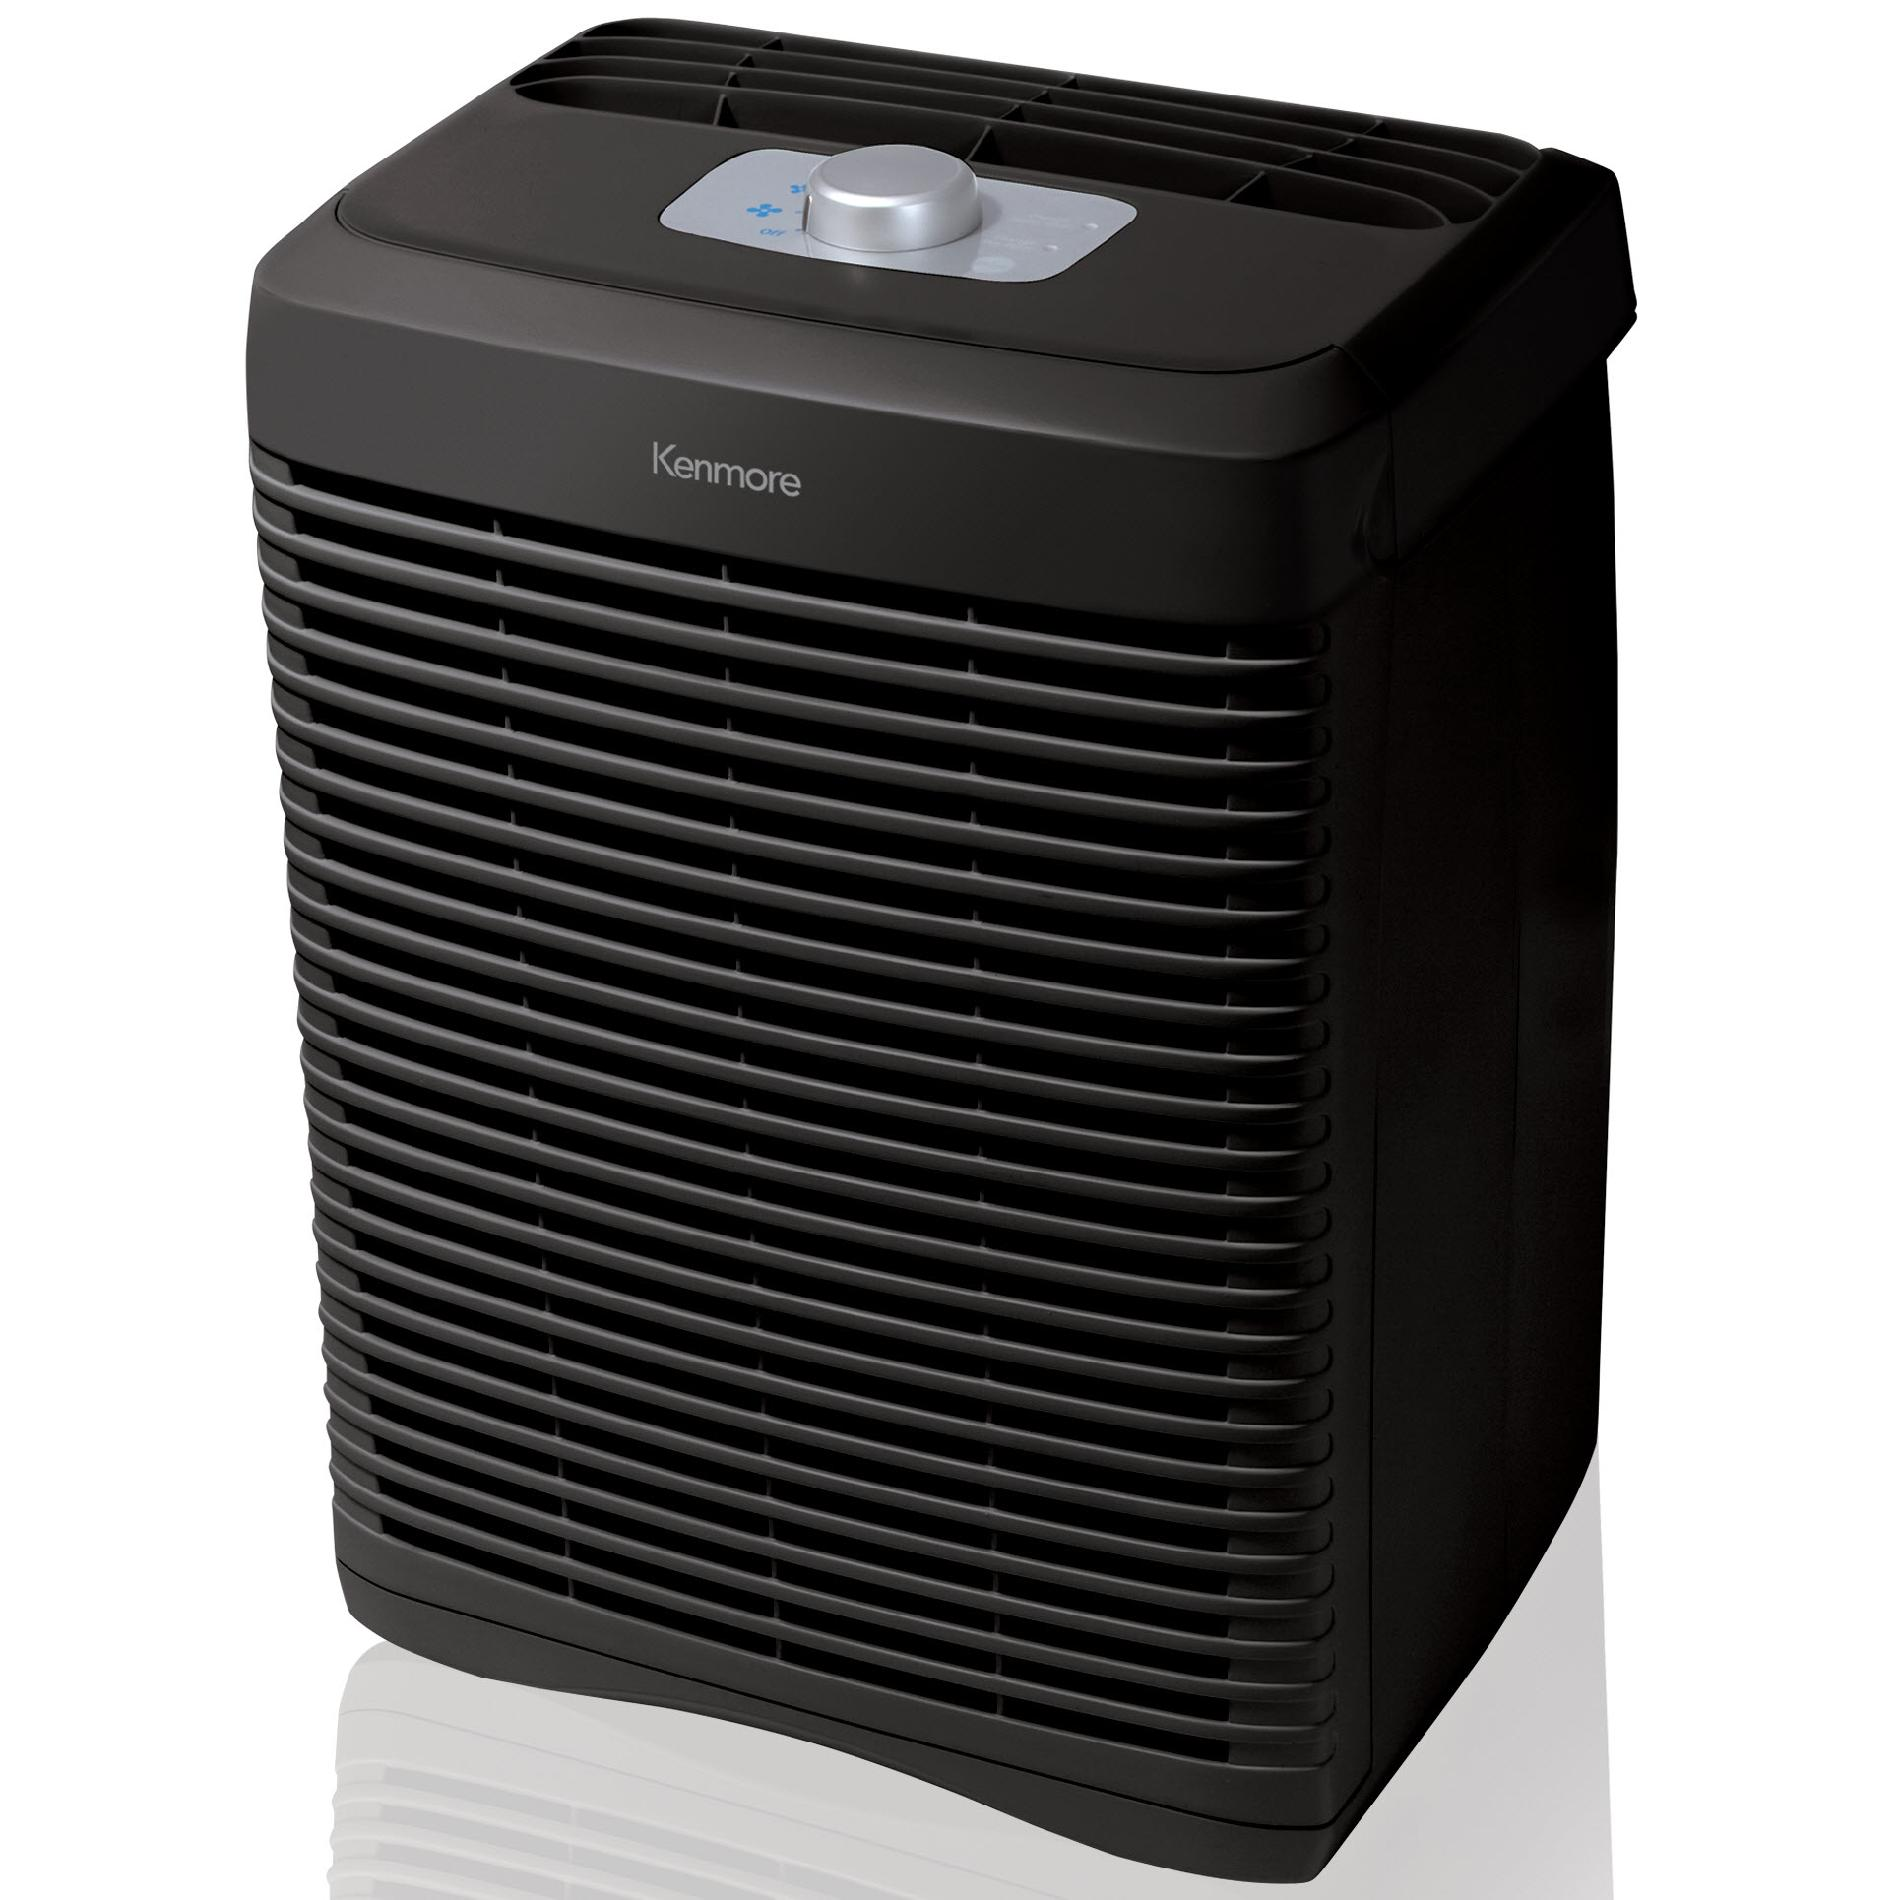 Kenmore 2-Filter Air Cleaner